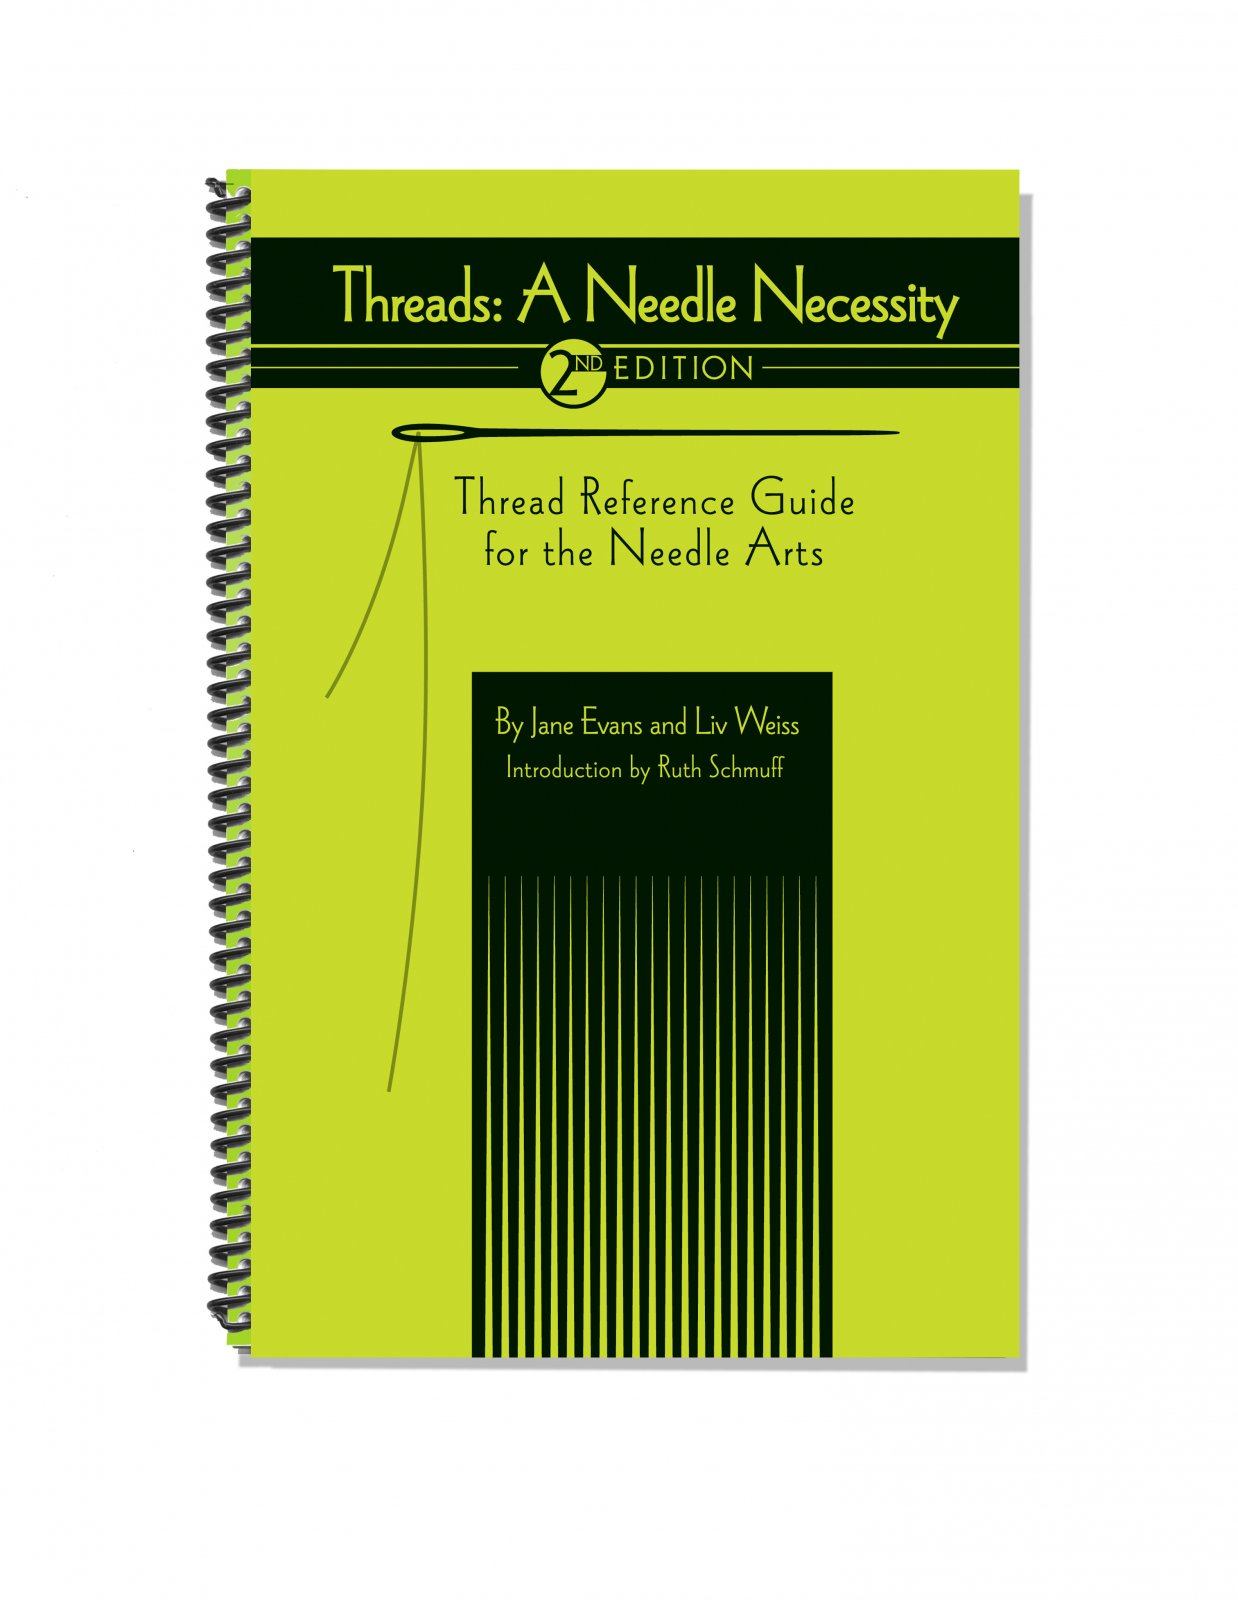 Threads: A Needle Necessity 2nd Edition